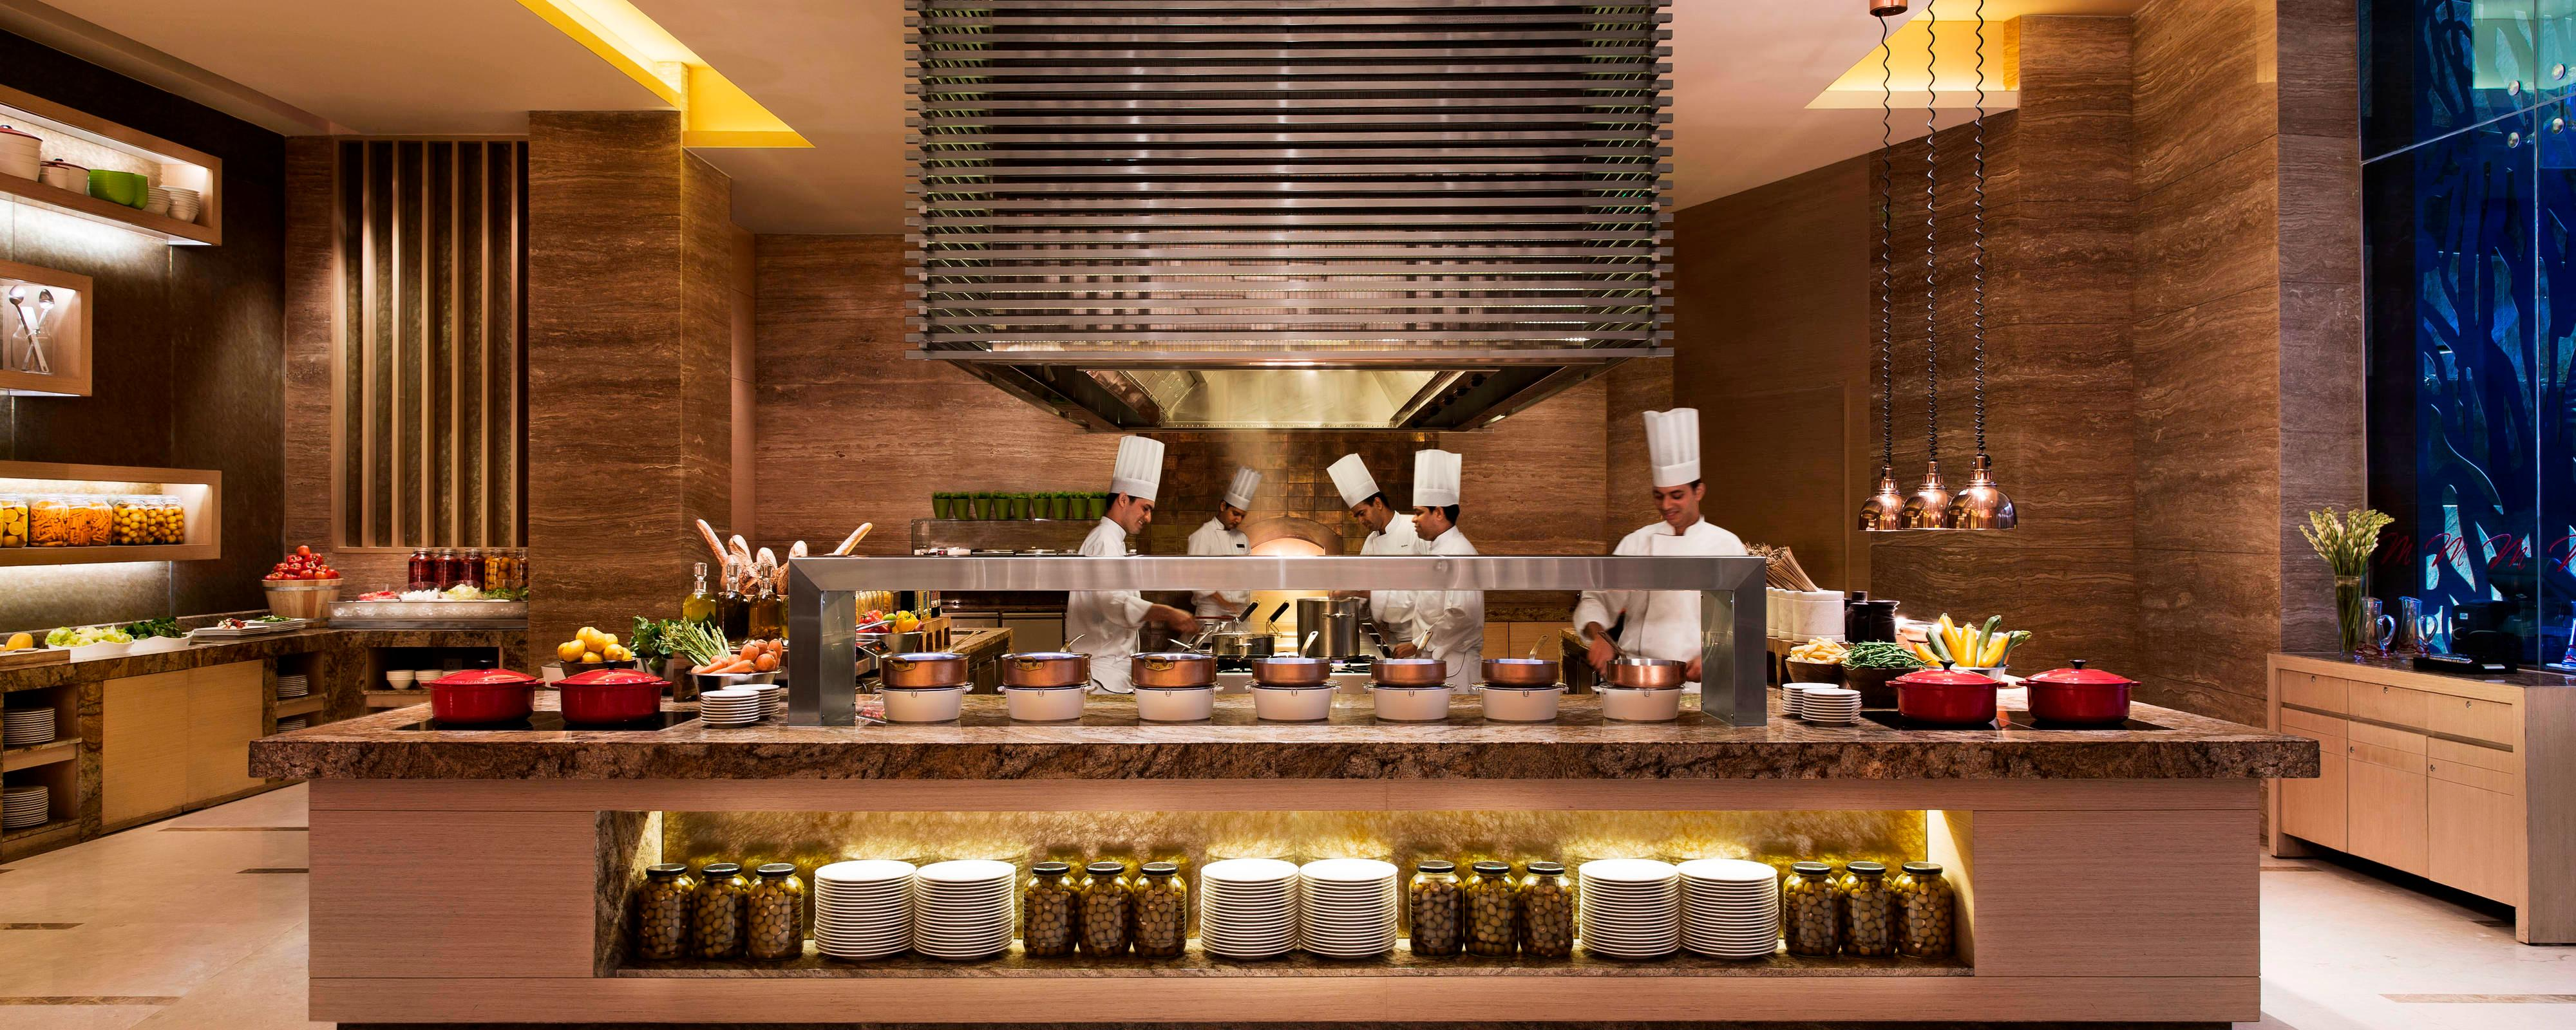 Marriott Bengaluru - M Cafe All Day Dining